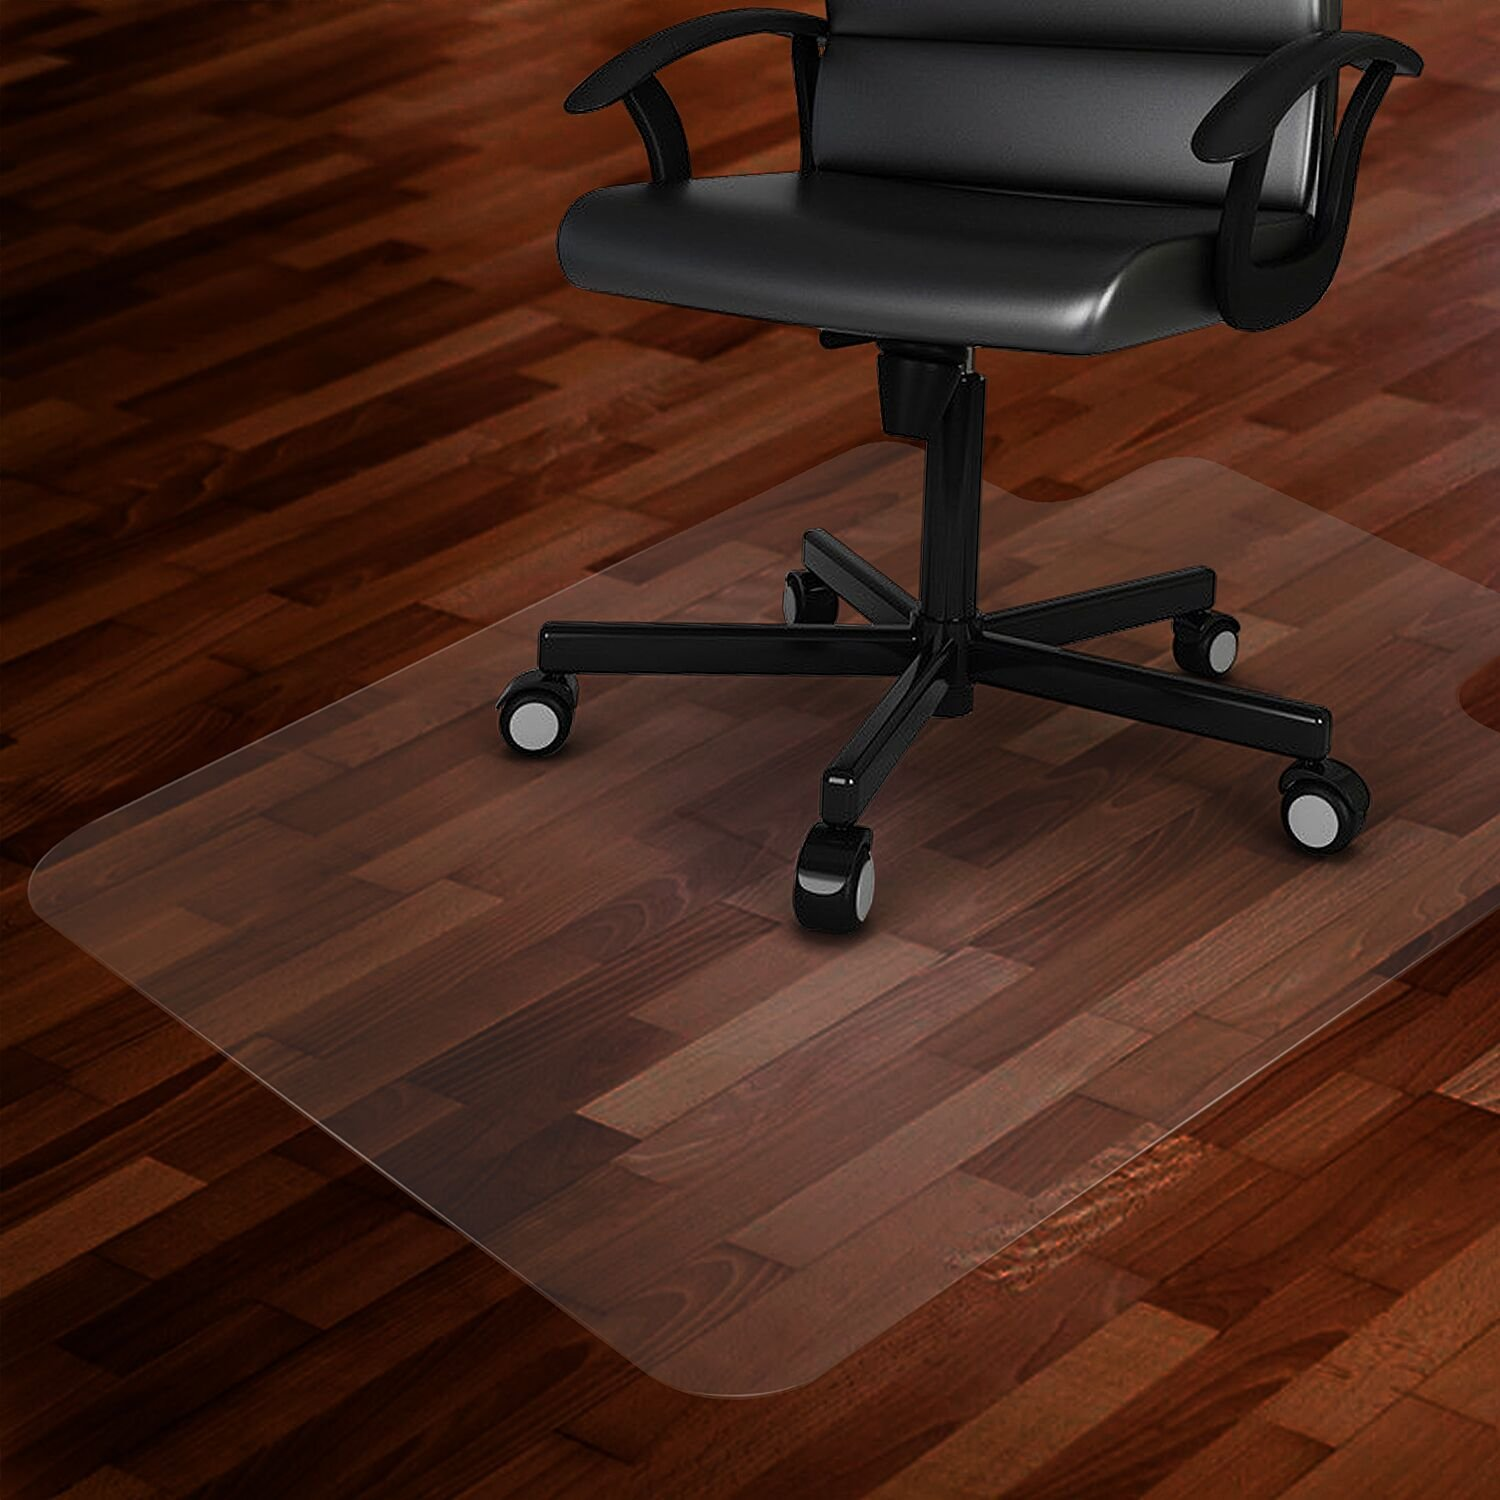 l mats hardwood design wood chair floor desk mat office